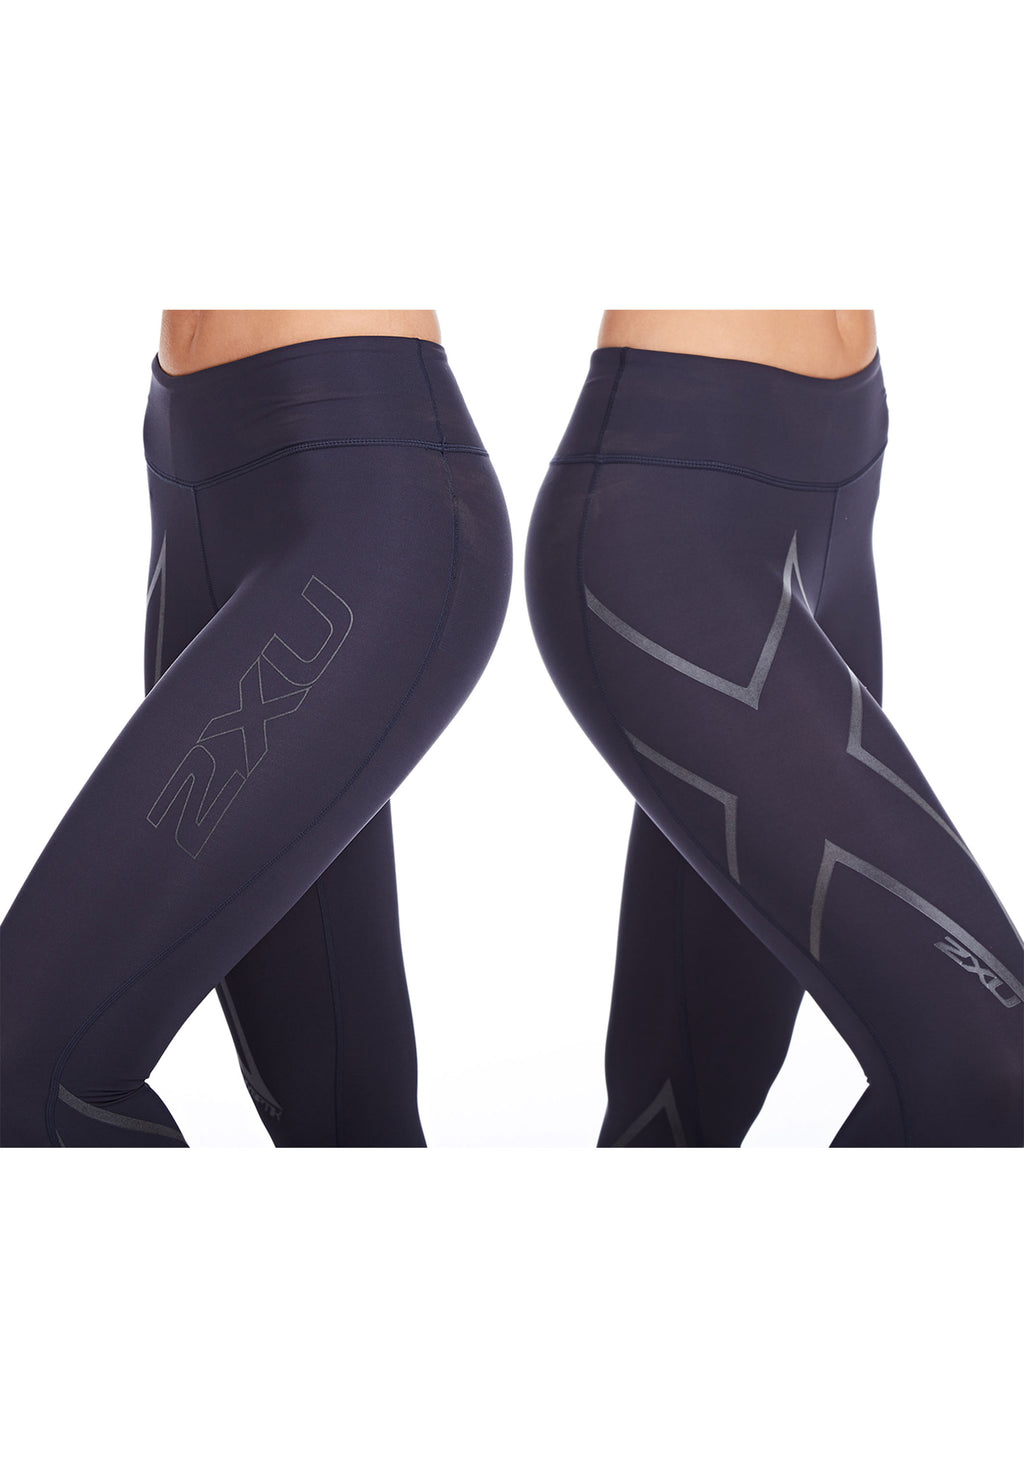 2XU WOMENS HYOPTIK MID RISE COMPRESSION TIGHTS (STEEL/REFLECTIVE BLACK) <BR> WA2864B STL/BRF